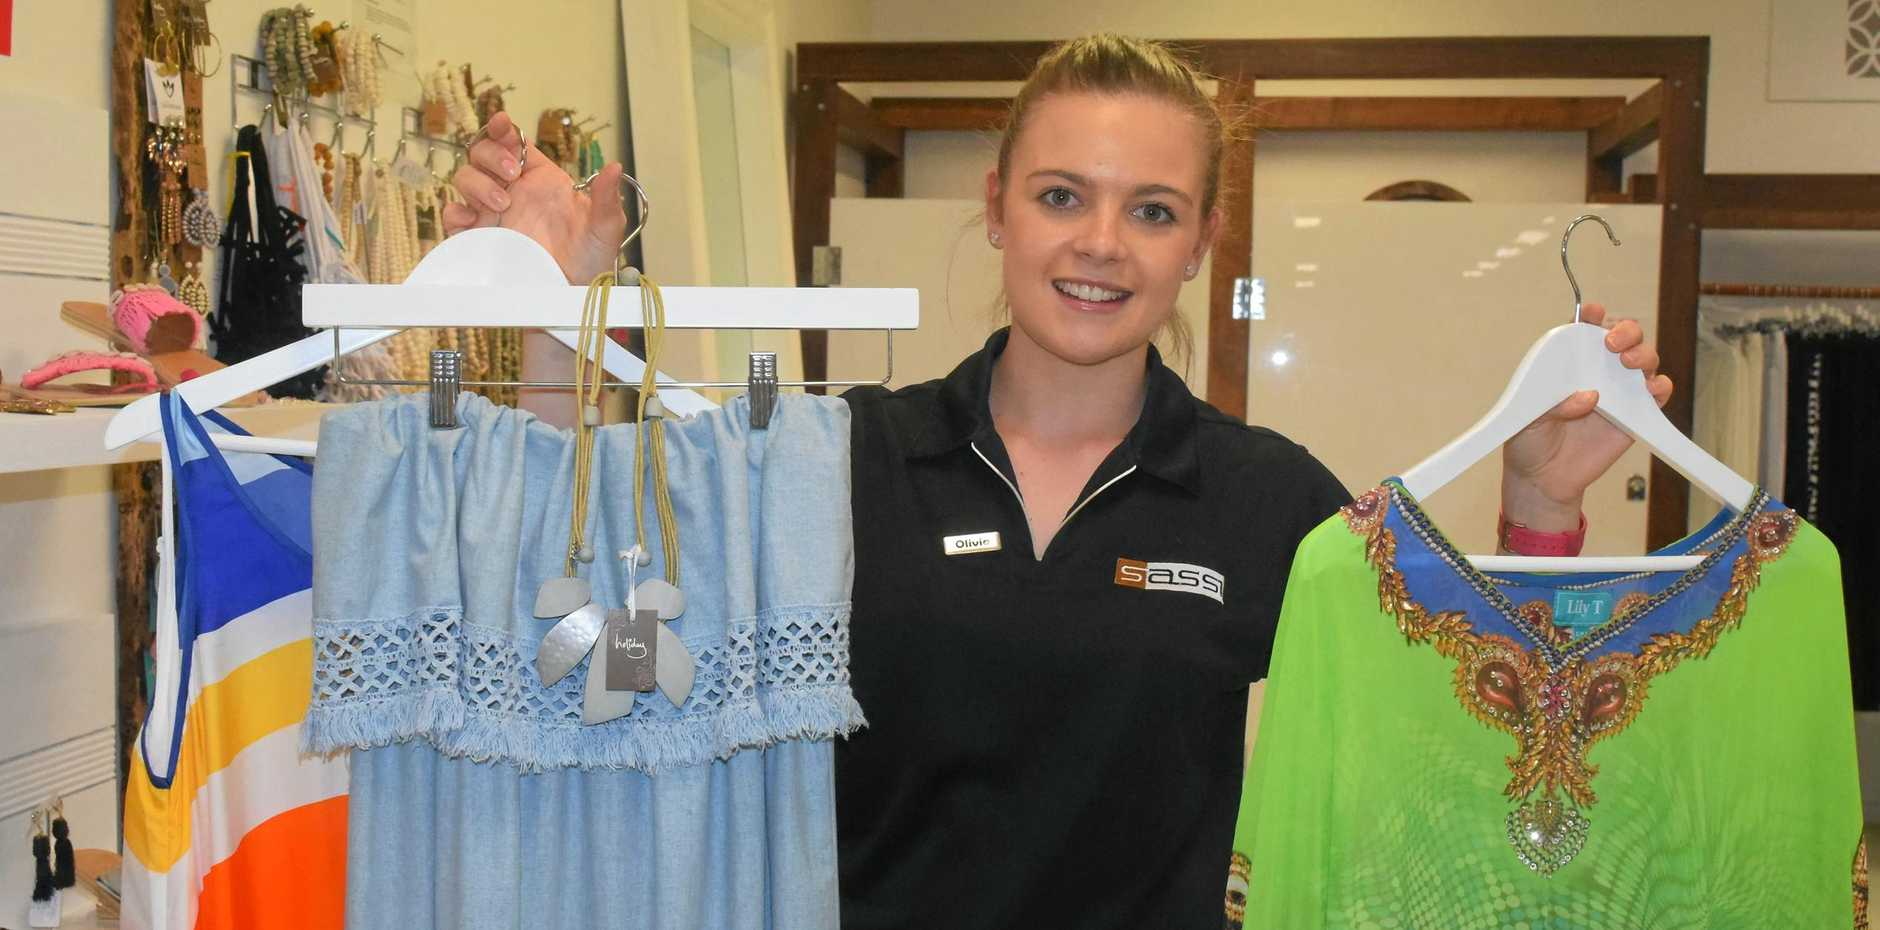 NEW THREADS: Sassi J Fashion saleswoman Olivia Radford shows off some latest pieces from the range.